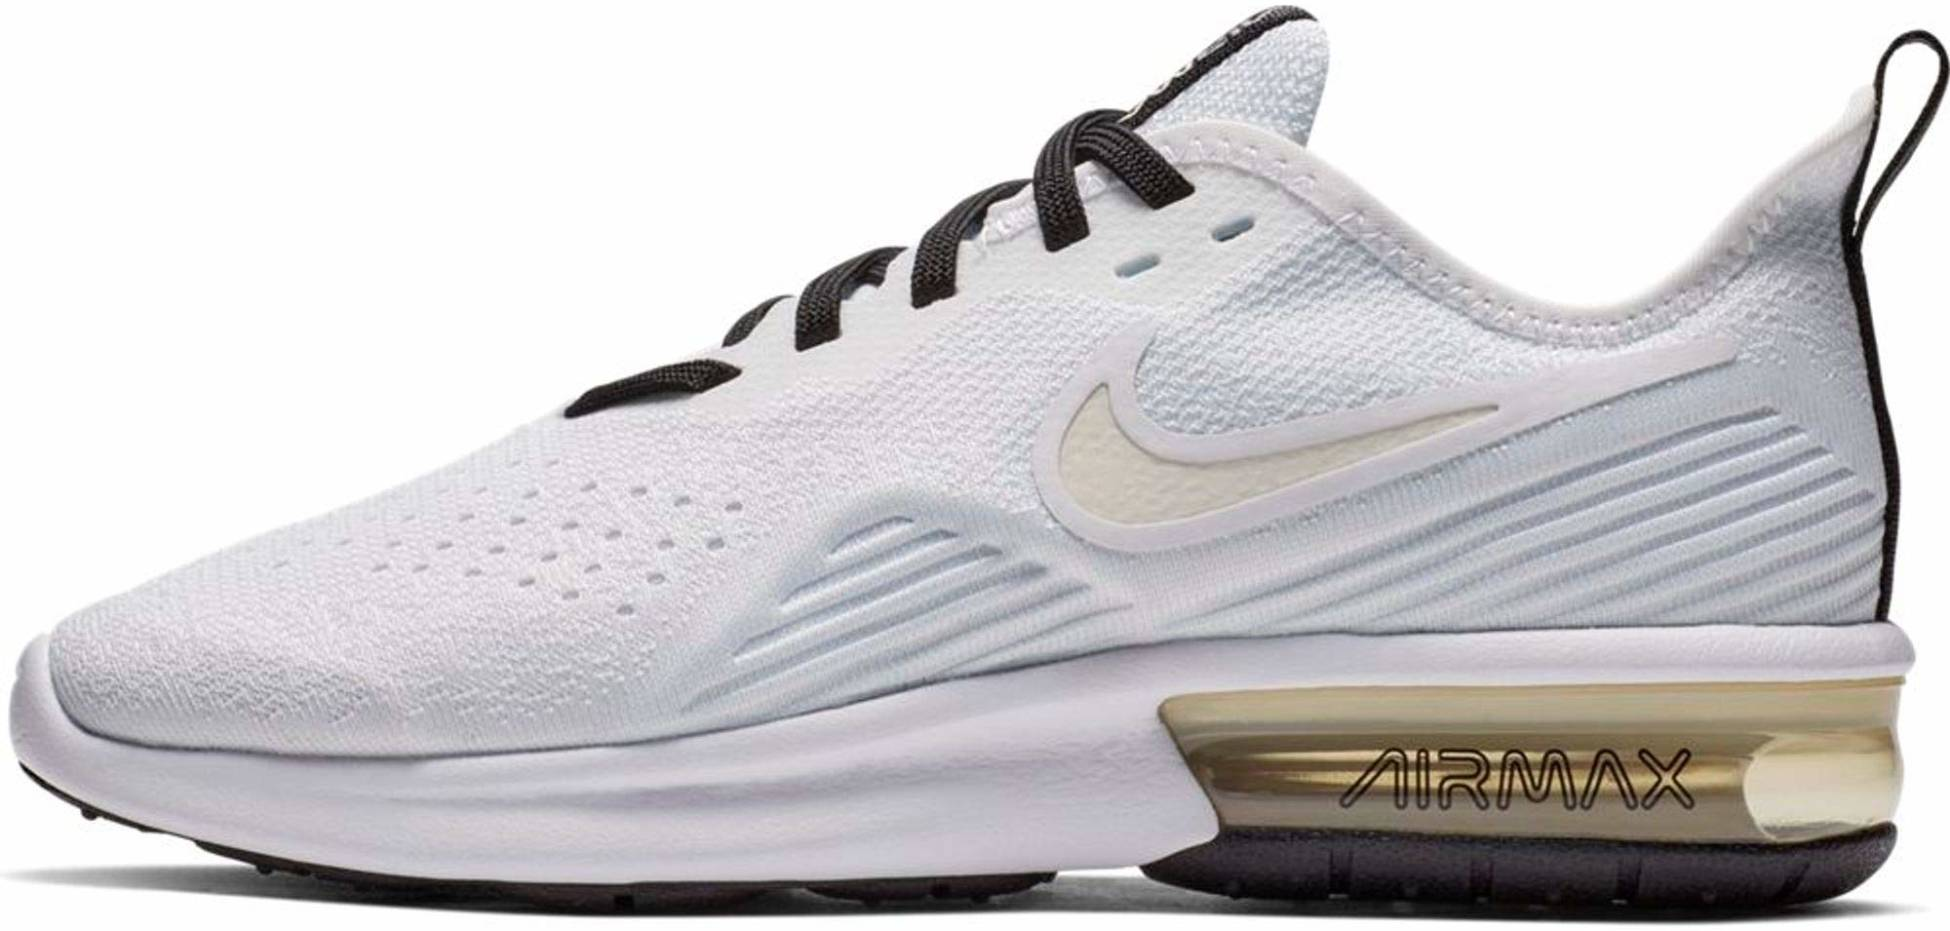 Nike Air Max Sequent 4 - Deals, Facts, Reviews (2021) | RunRepeat